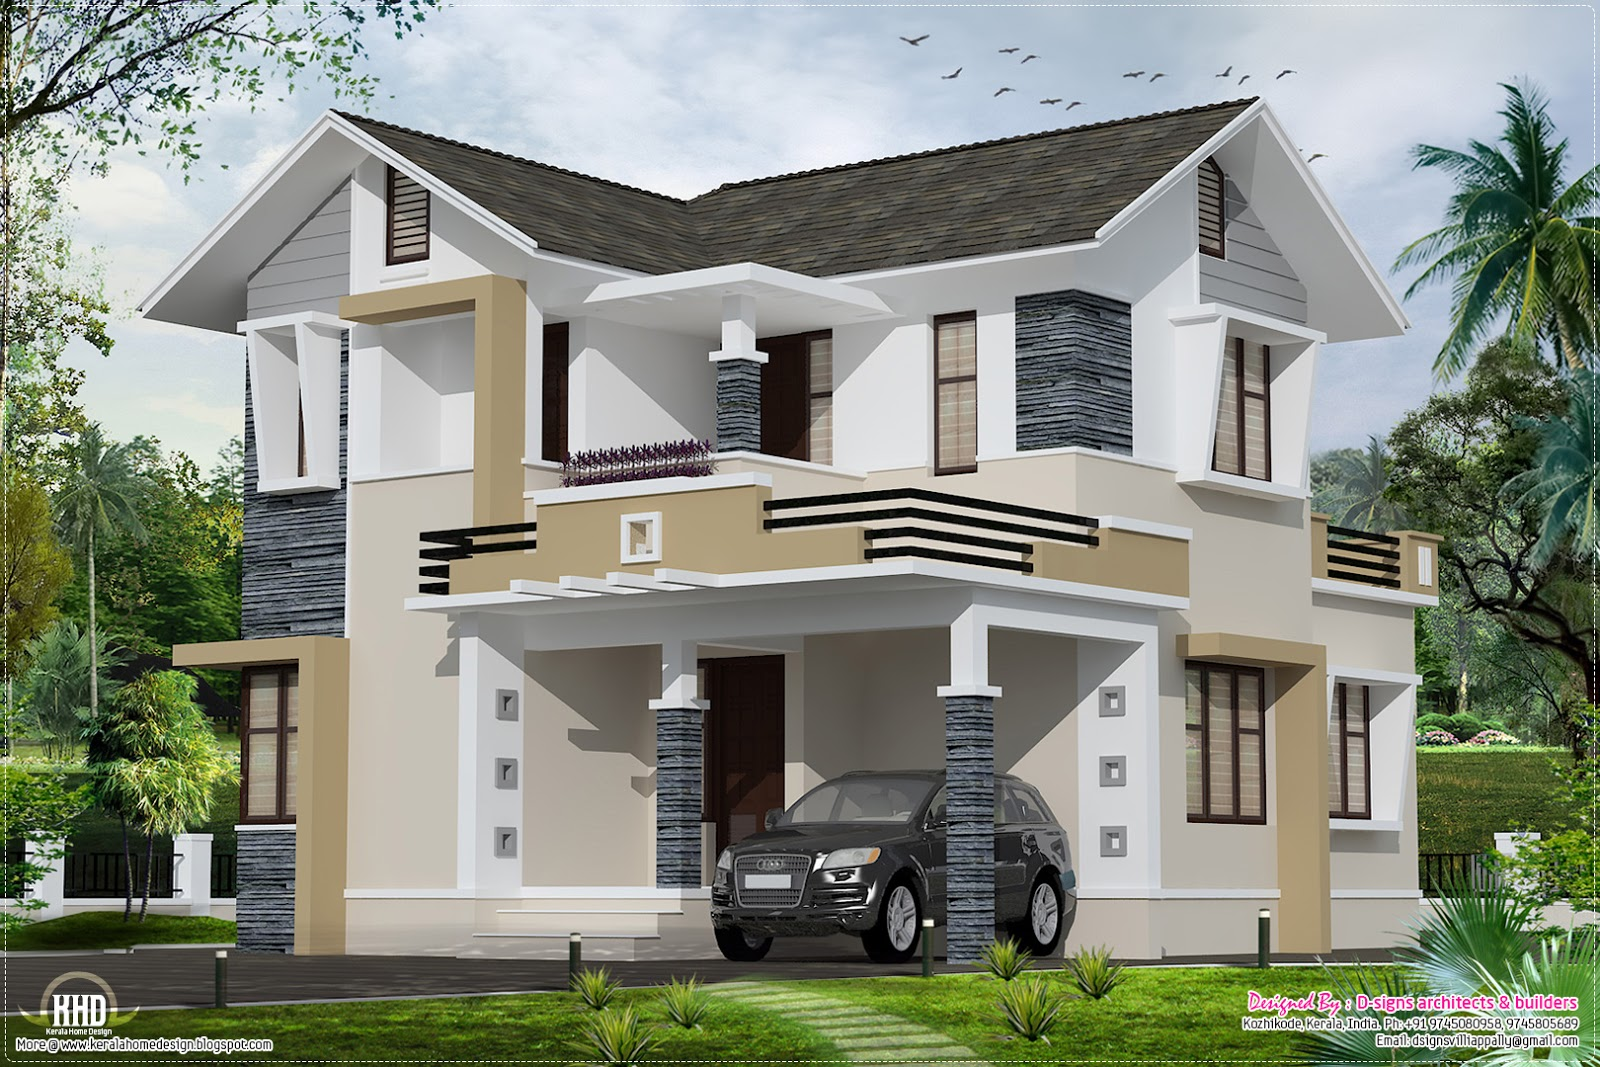 Stylish small home design kerala home design and floor plans for Design for small houses